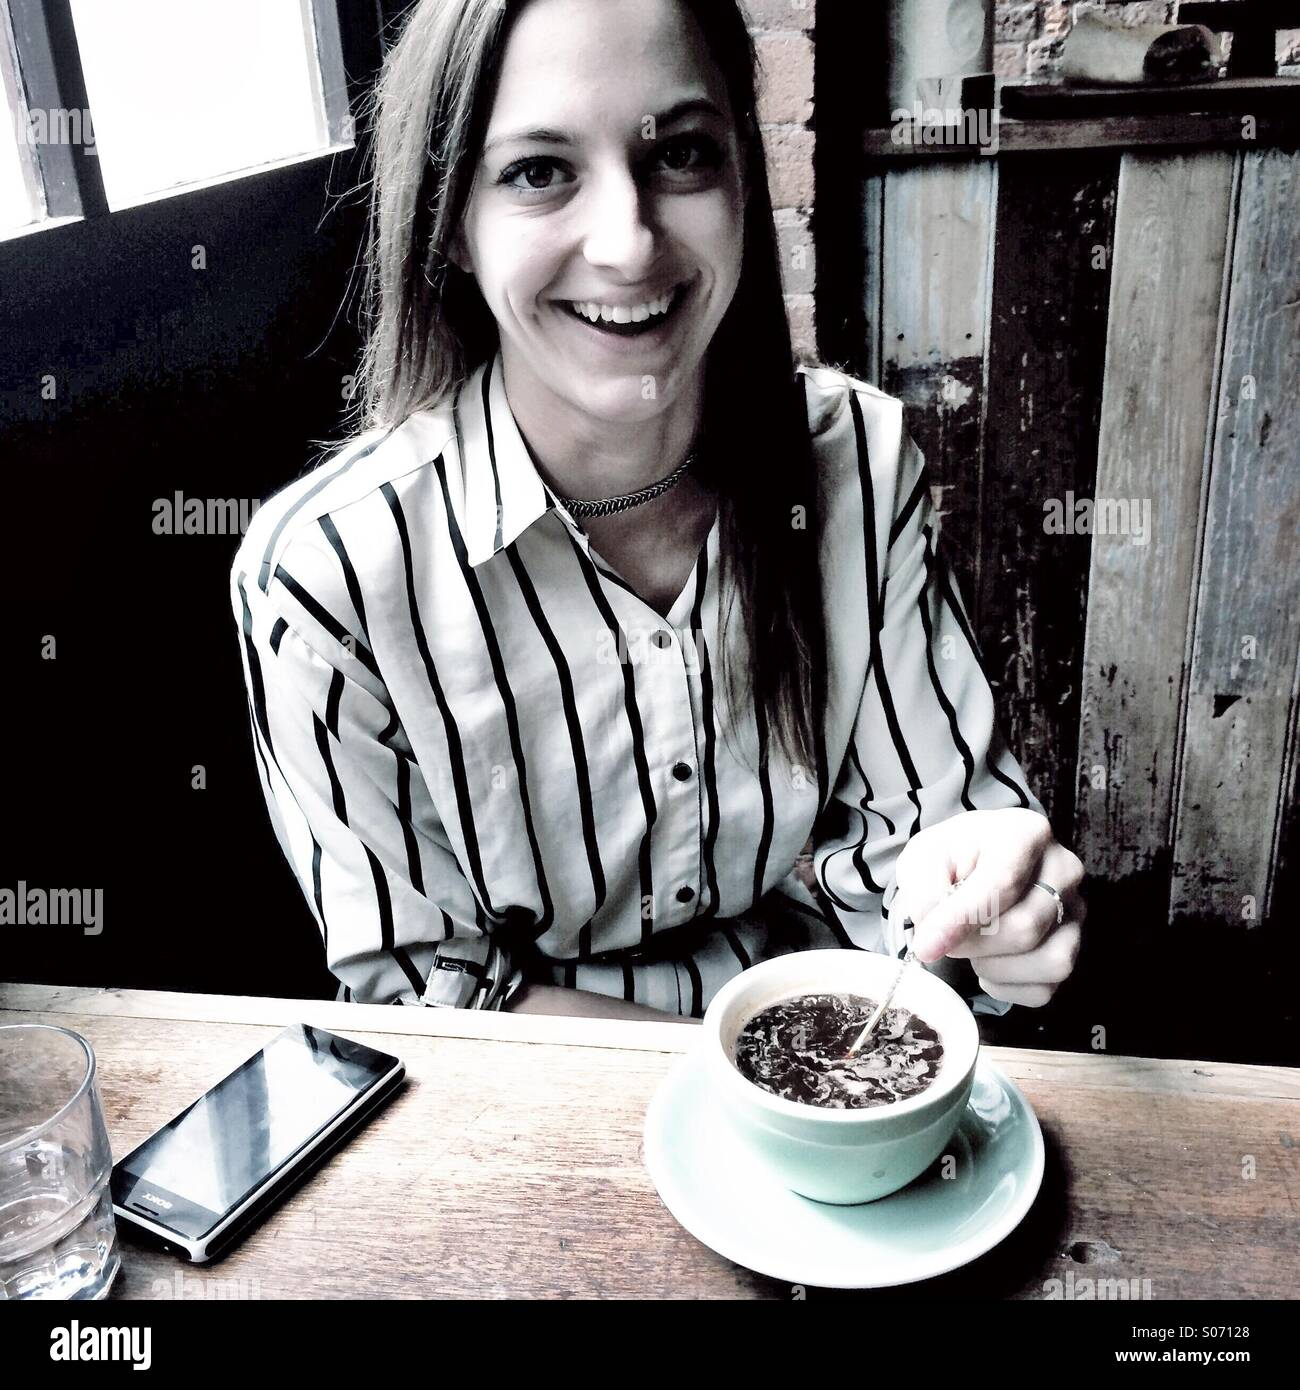 A young woman smiling in a cafe - Stock Image